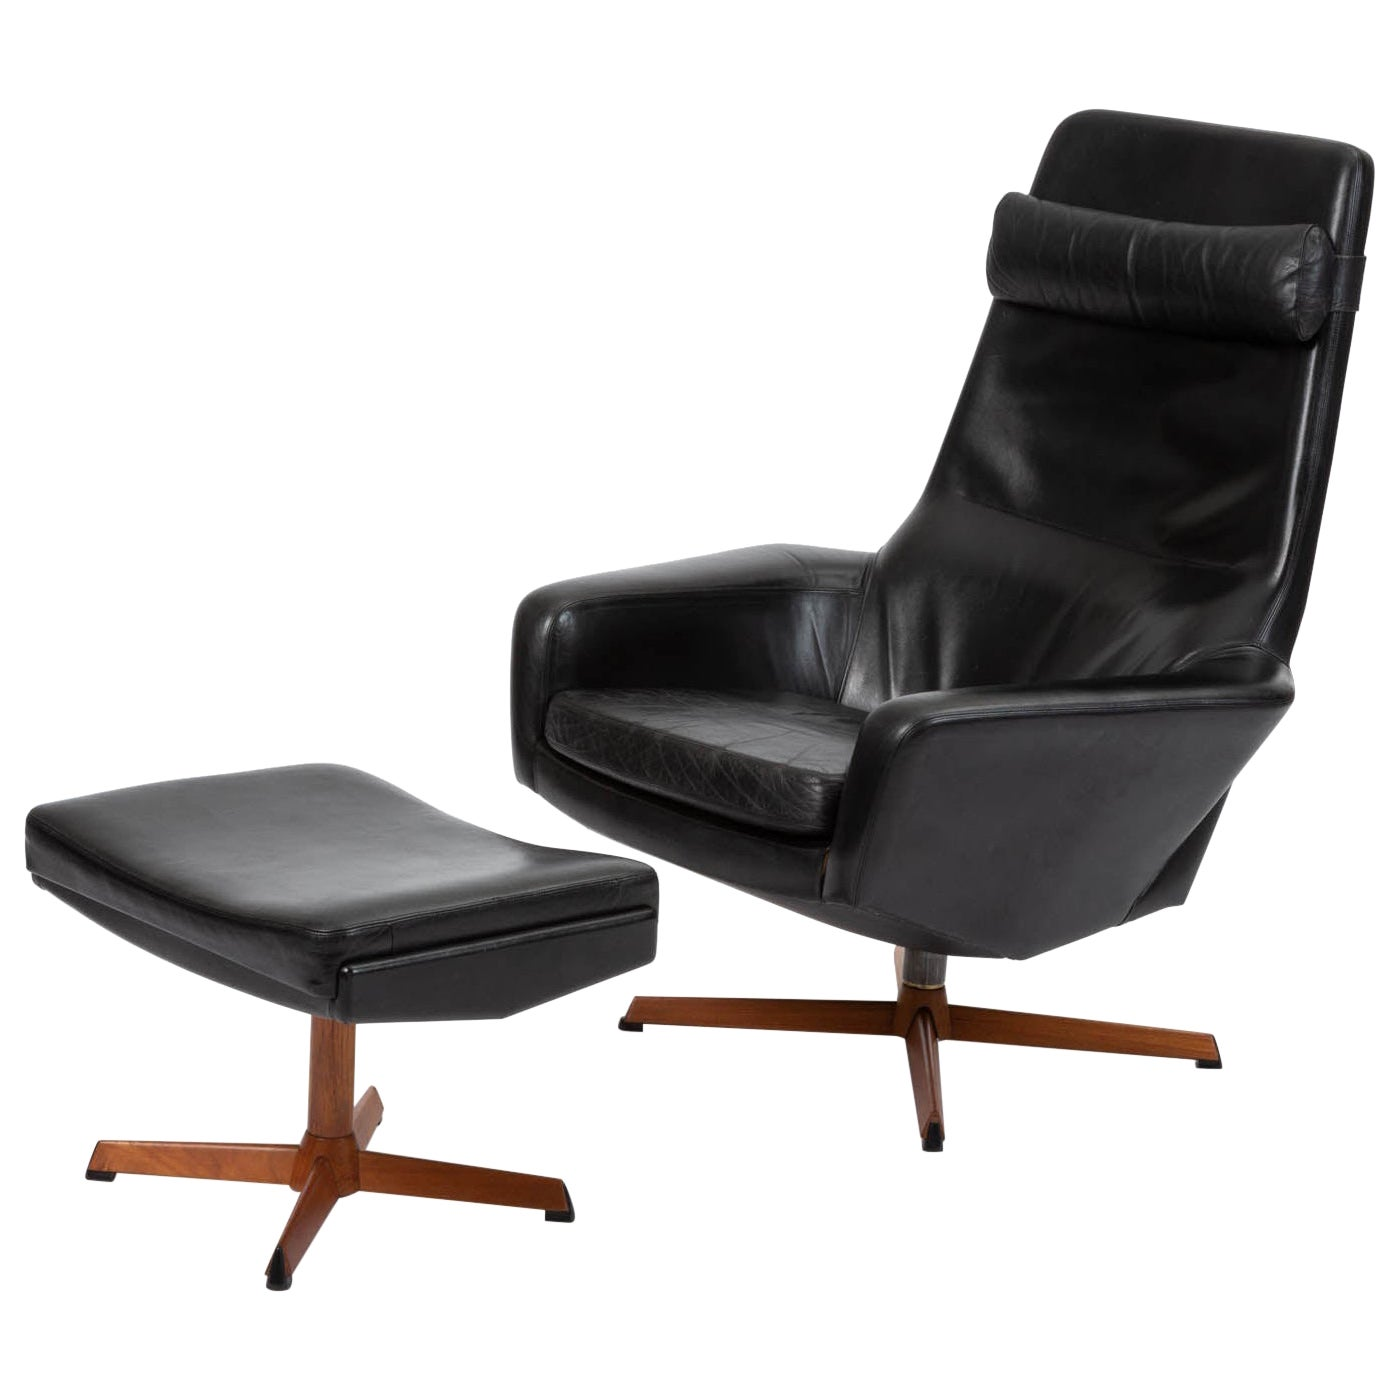 Lounge Chair with Ottoman by Ib Madsen for Madsen & Schübell